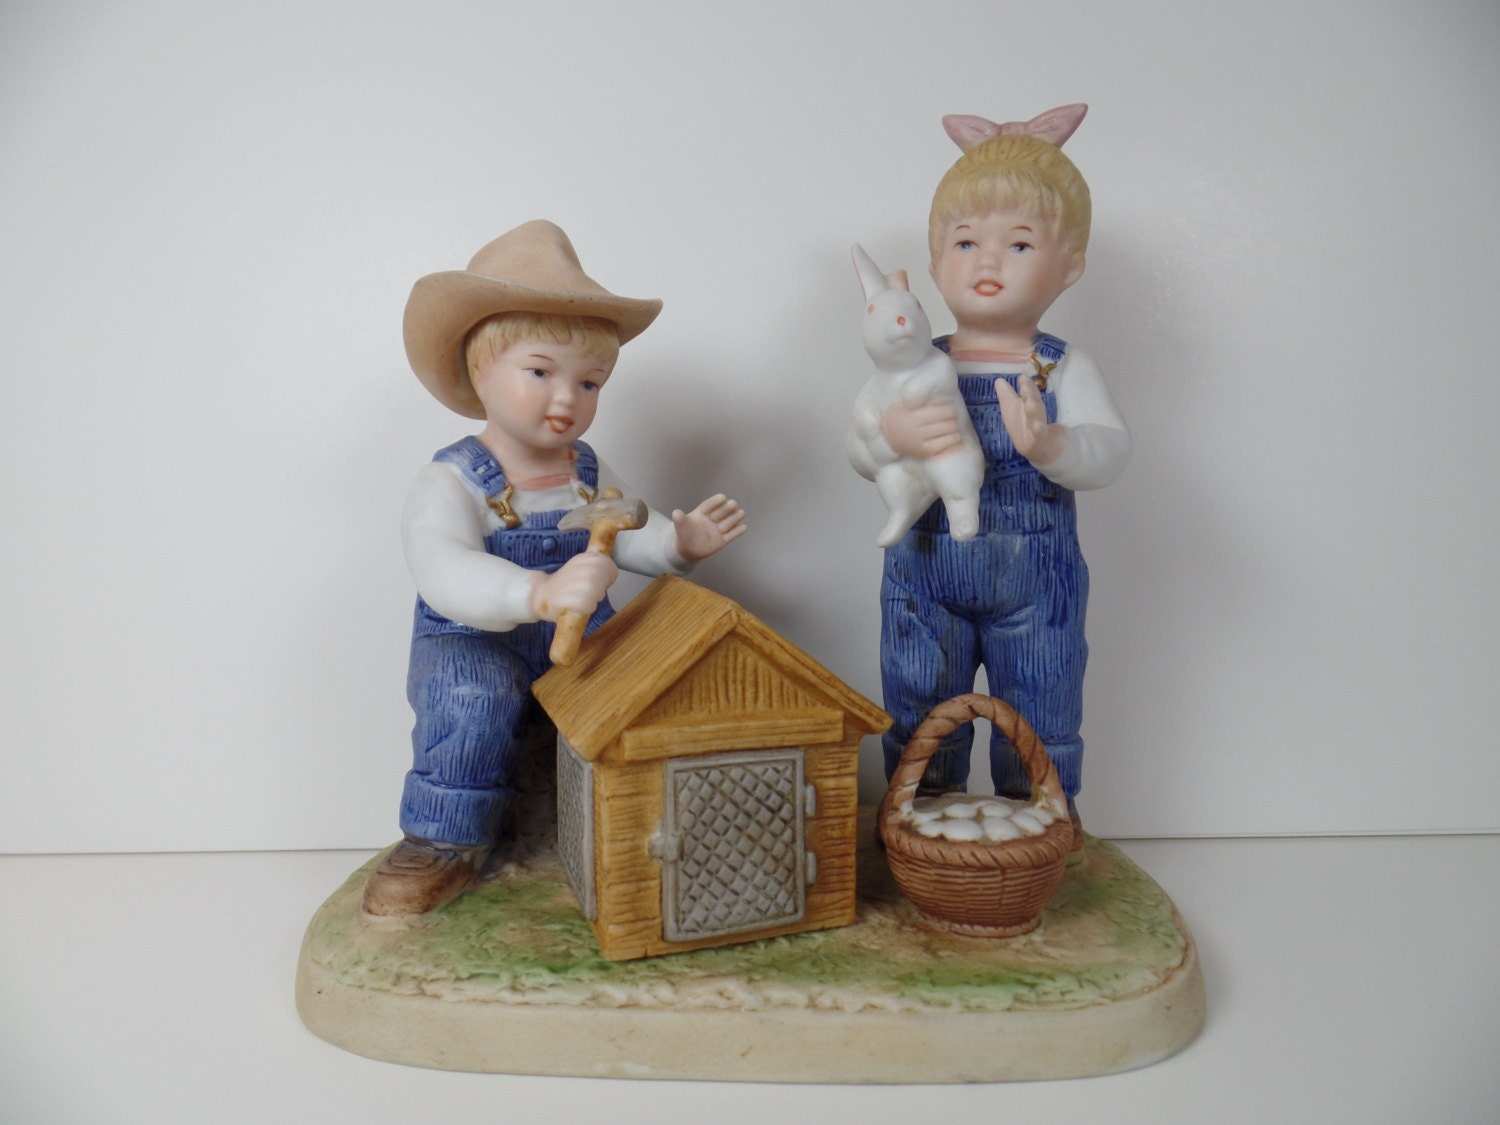 Vintage figurine homco denim days bunny by Home interiors denim das